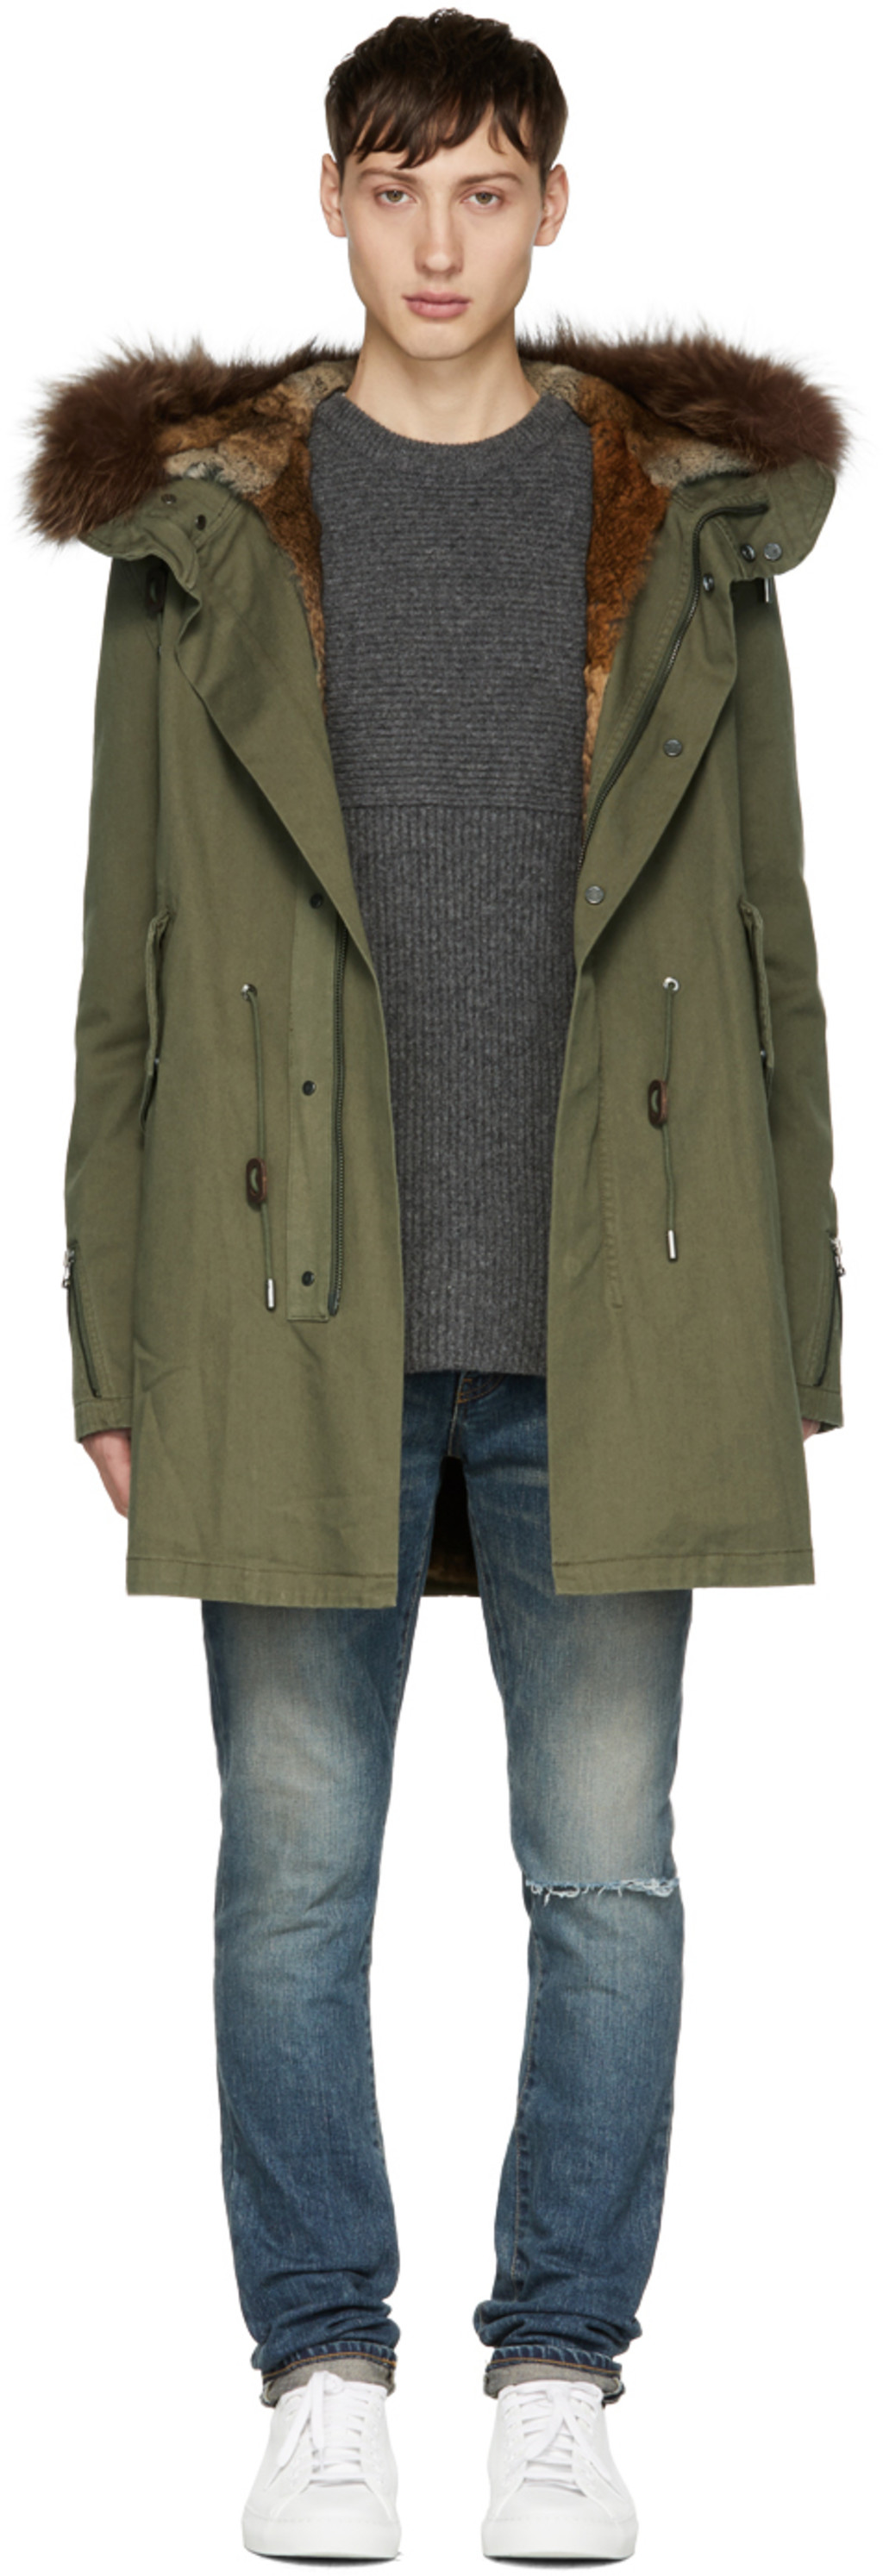 Yves salomon mens parka